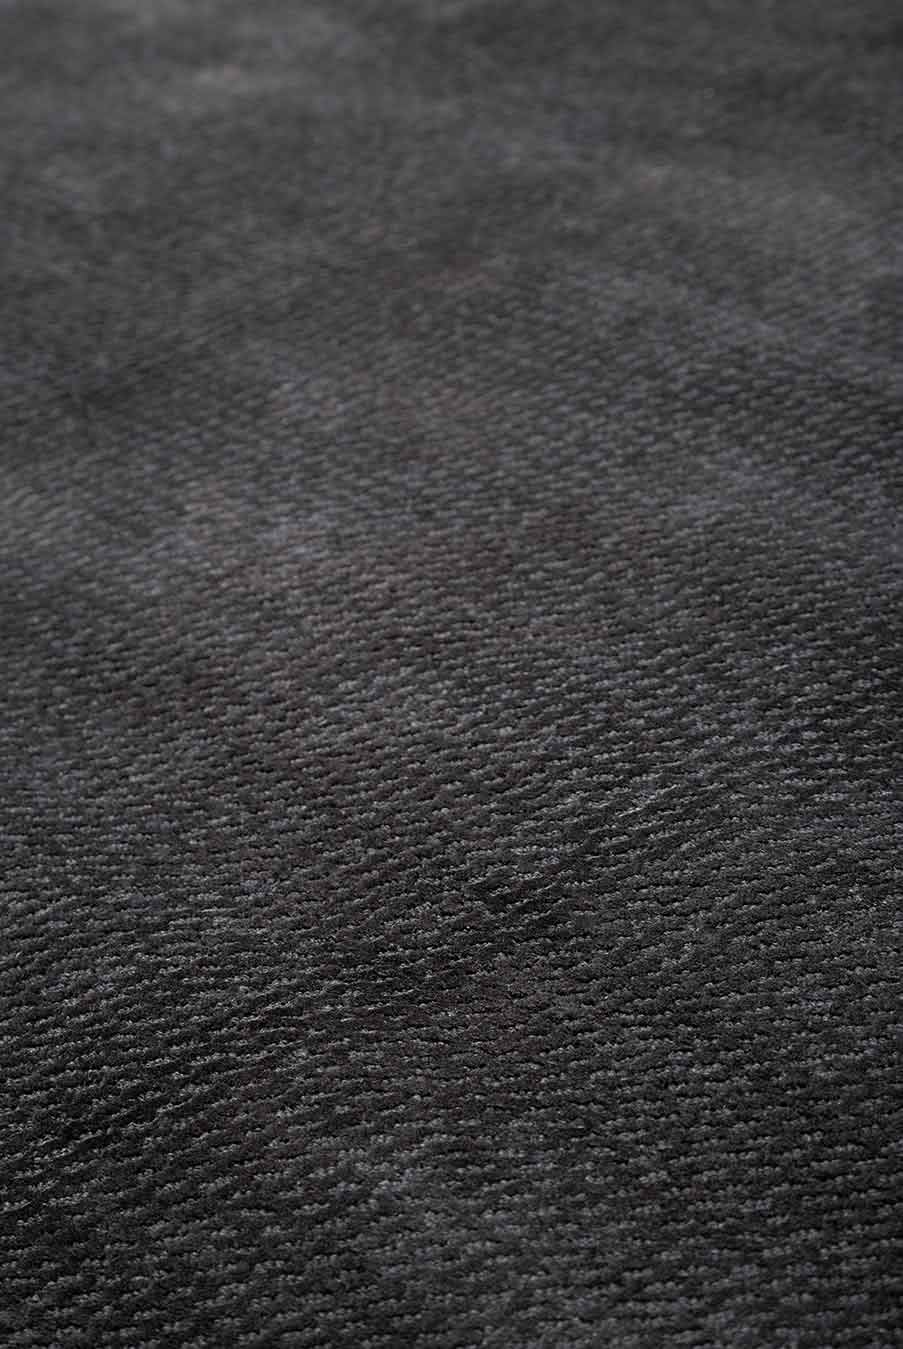 Close up view of textured Nickel rug in charcoal colour